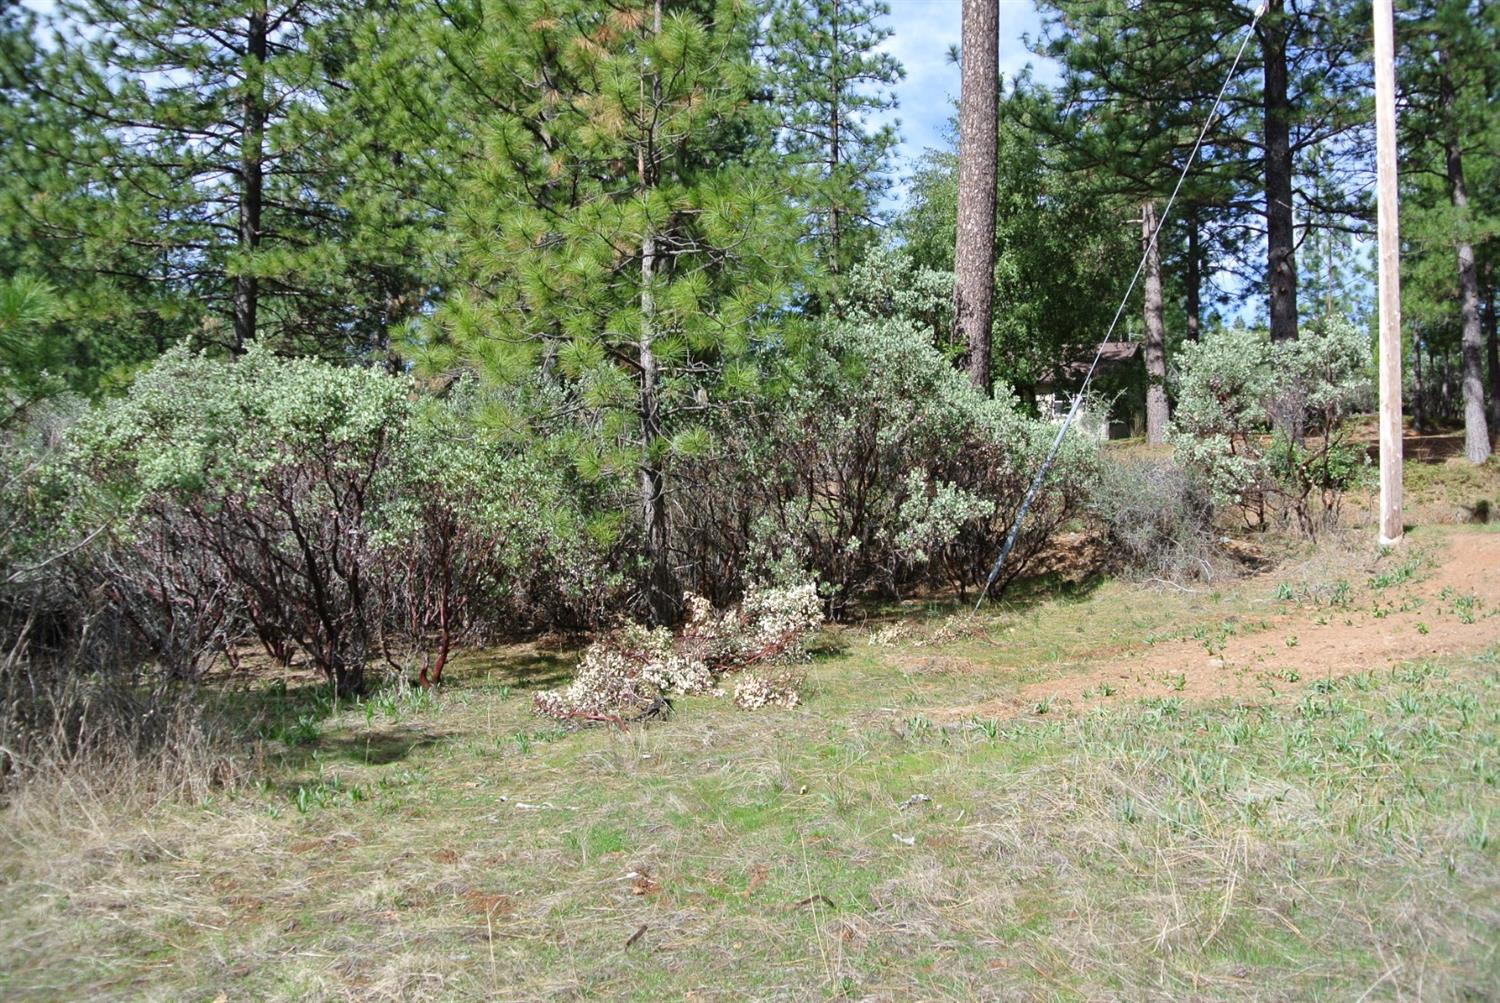 1 acre at $29,900 in Foresthill off Todd Valley Rd.  flag lot so its private. Trees and brush.